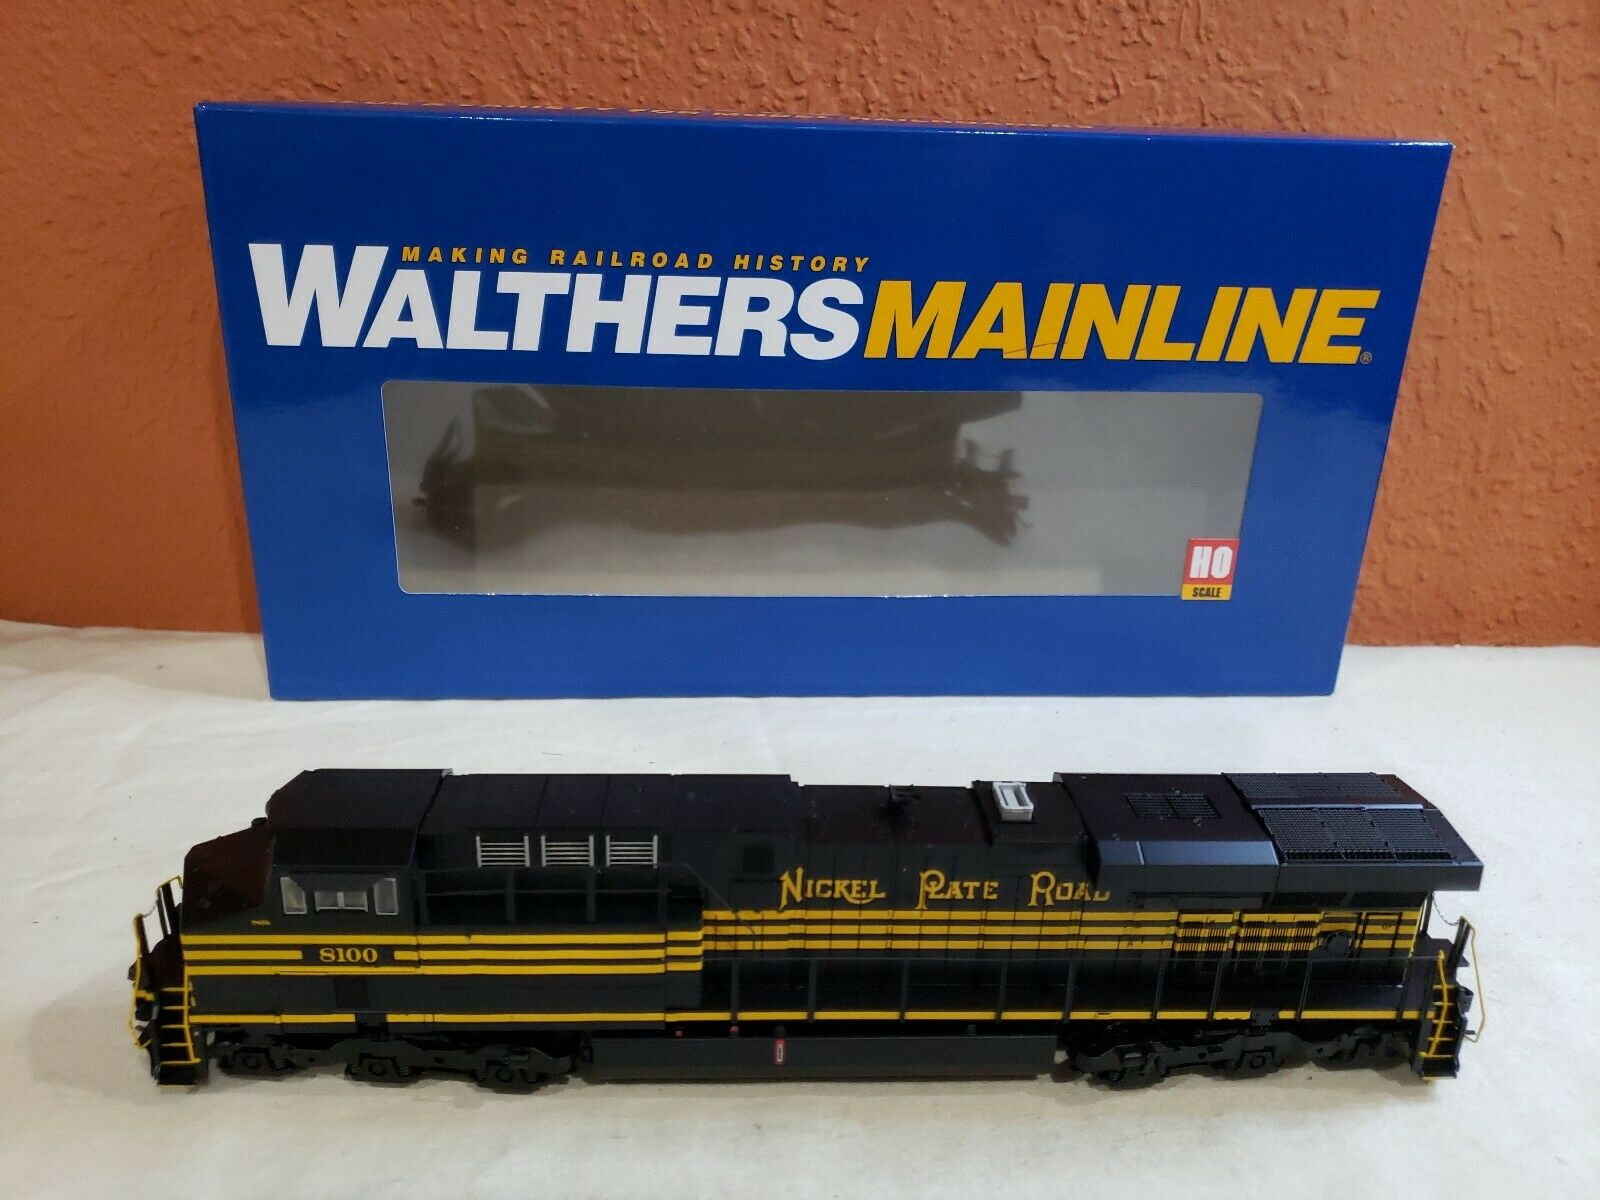 HO SCALE WALTHERS MAINLINE GE ES44 EVOLUTION LOCO NS  8100. 910-10181. DCC READY